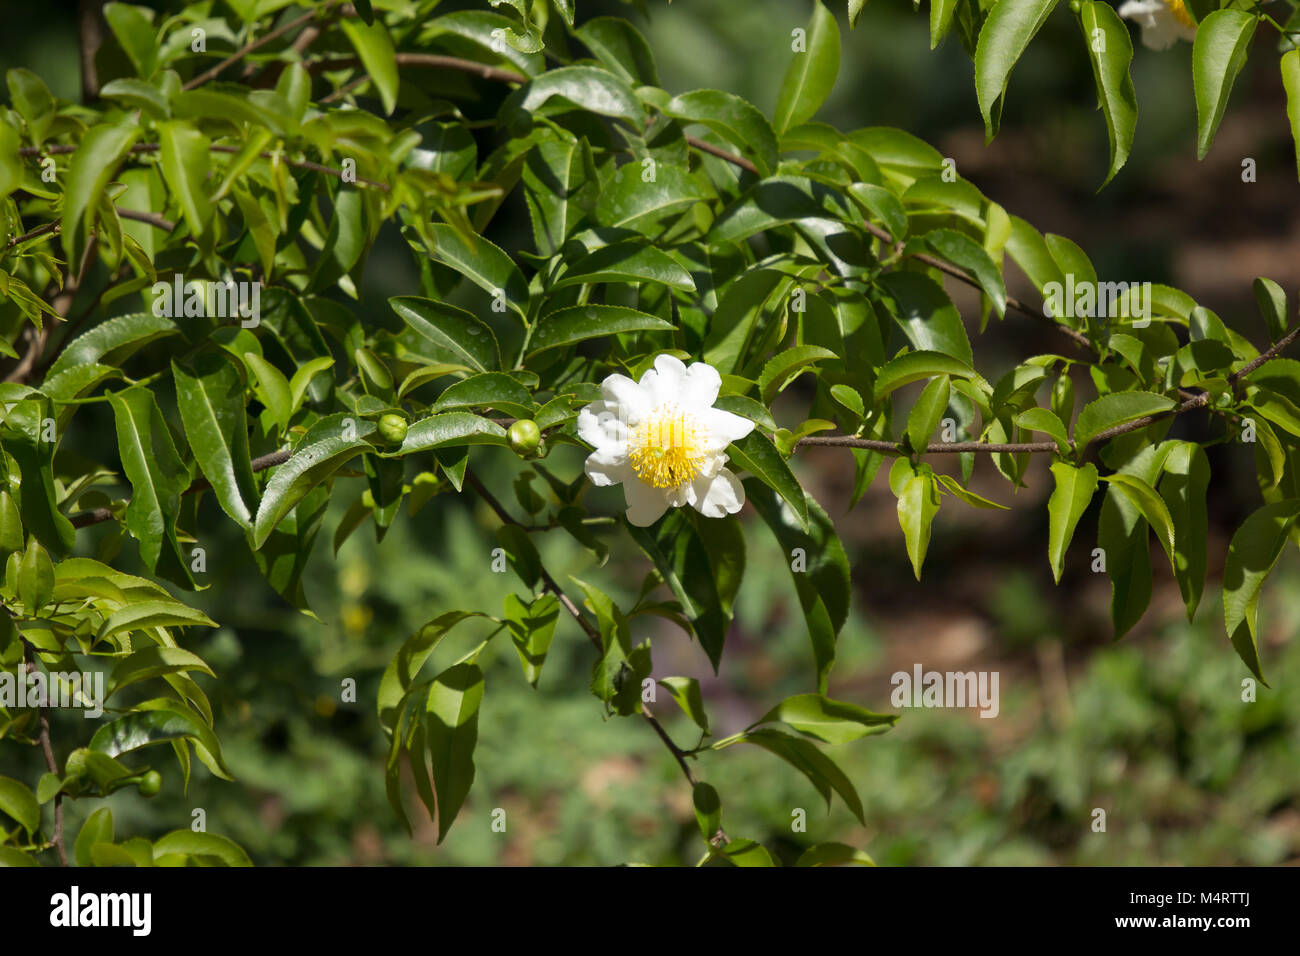 White And Yellow Flower Name Is Fried Egg Tree Or Oncoba Spinosa